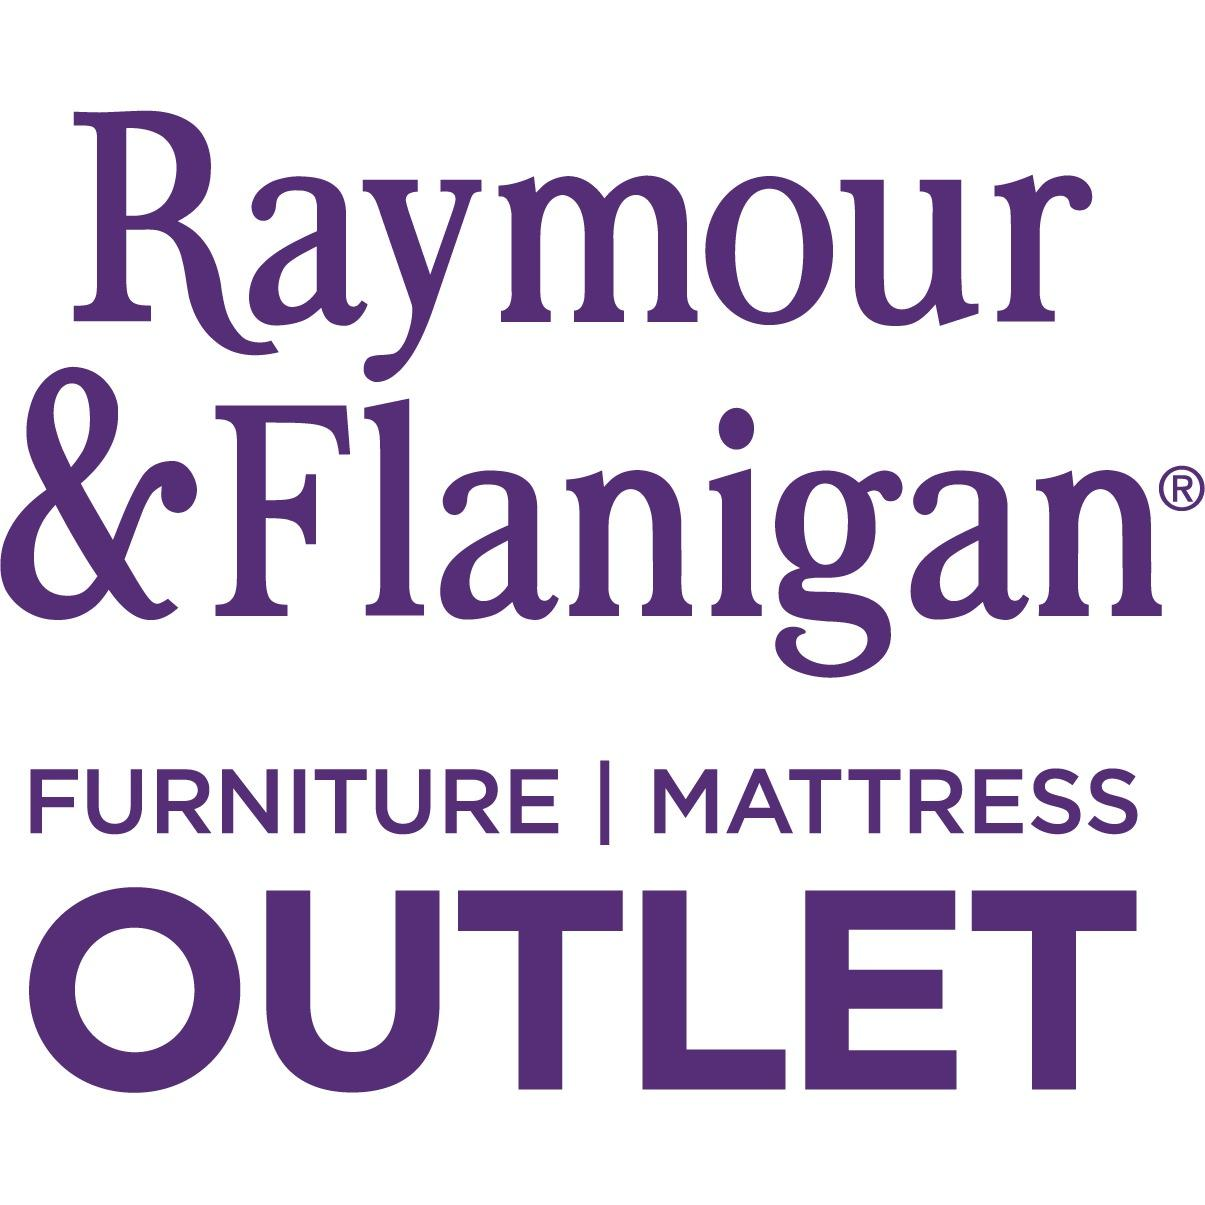 Raymour Flanigan Furniture And Mattress Outlet Millbury Ma